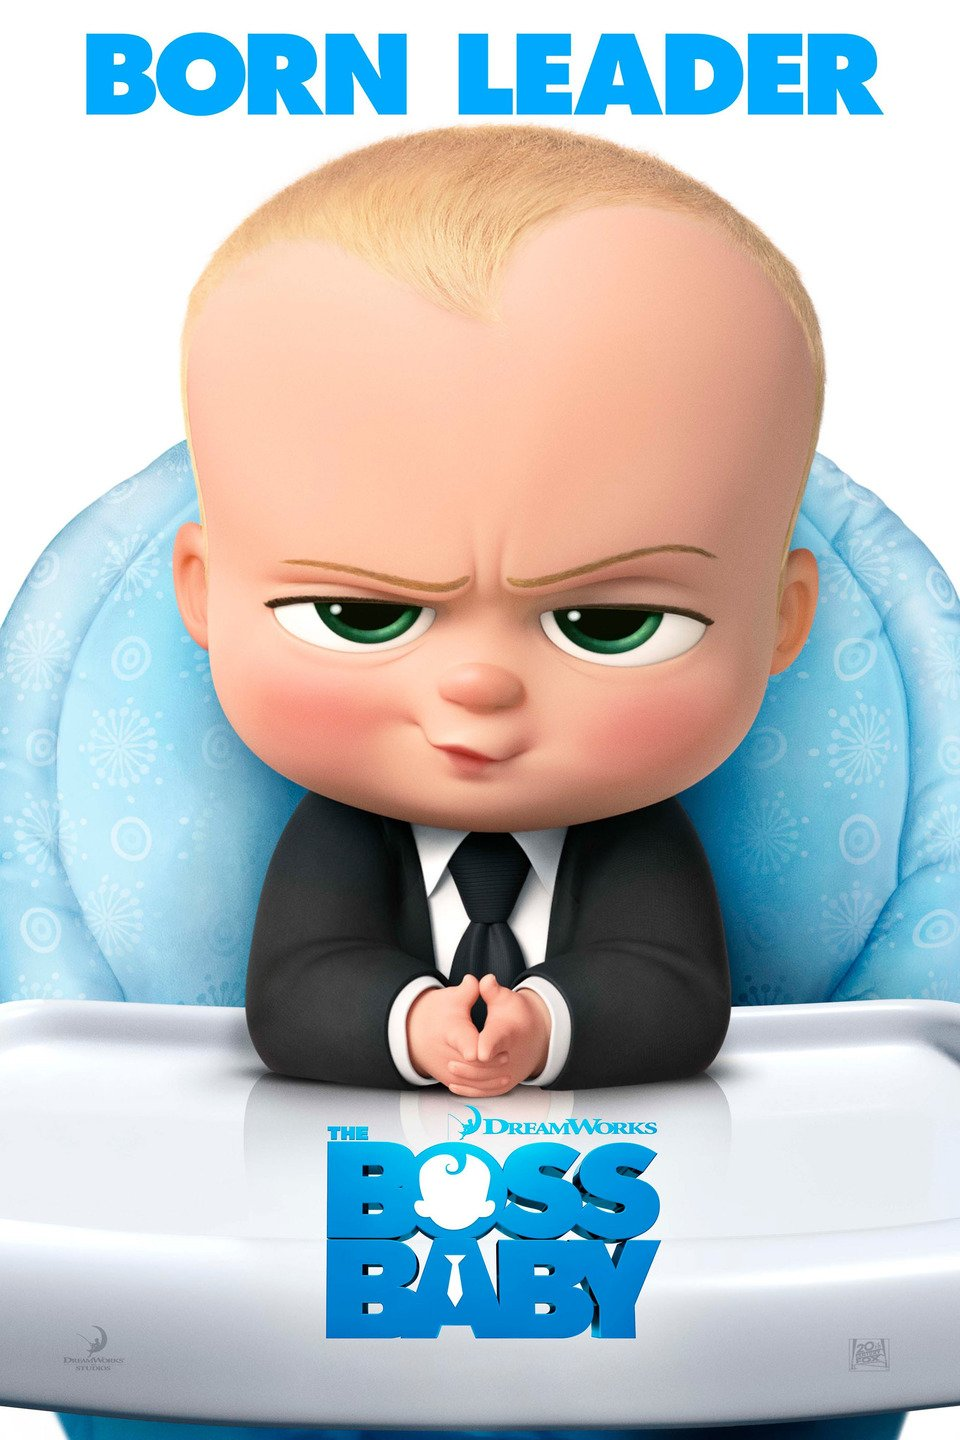 BTW, Boss Baby is being made into a movie starring Alec Baldwin, Steve Buscemi, and Lisa Kudrow.